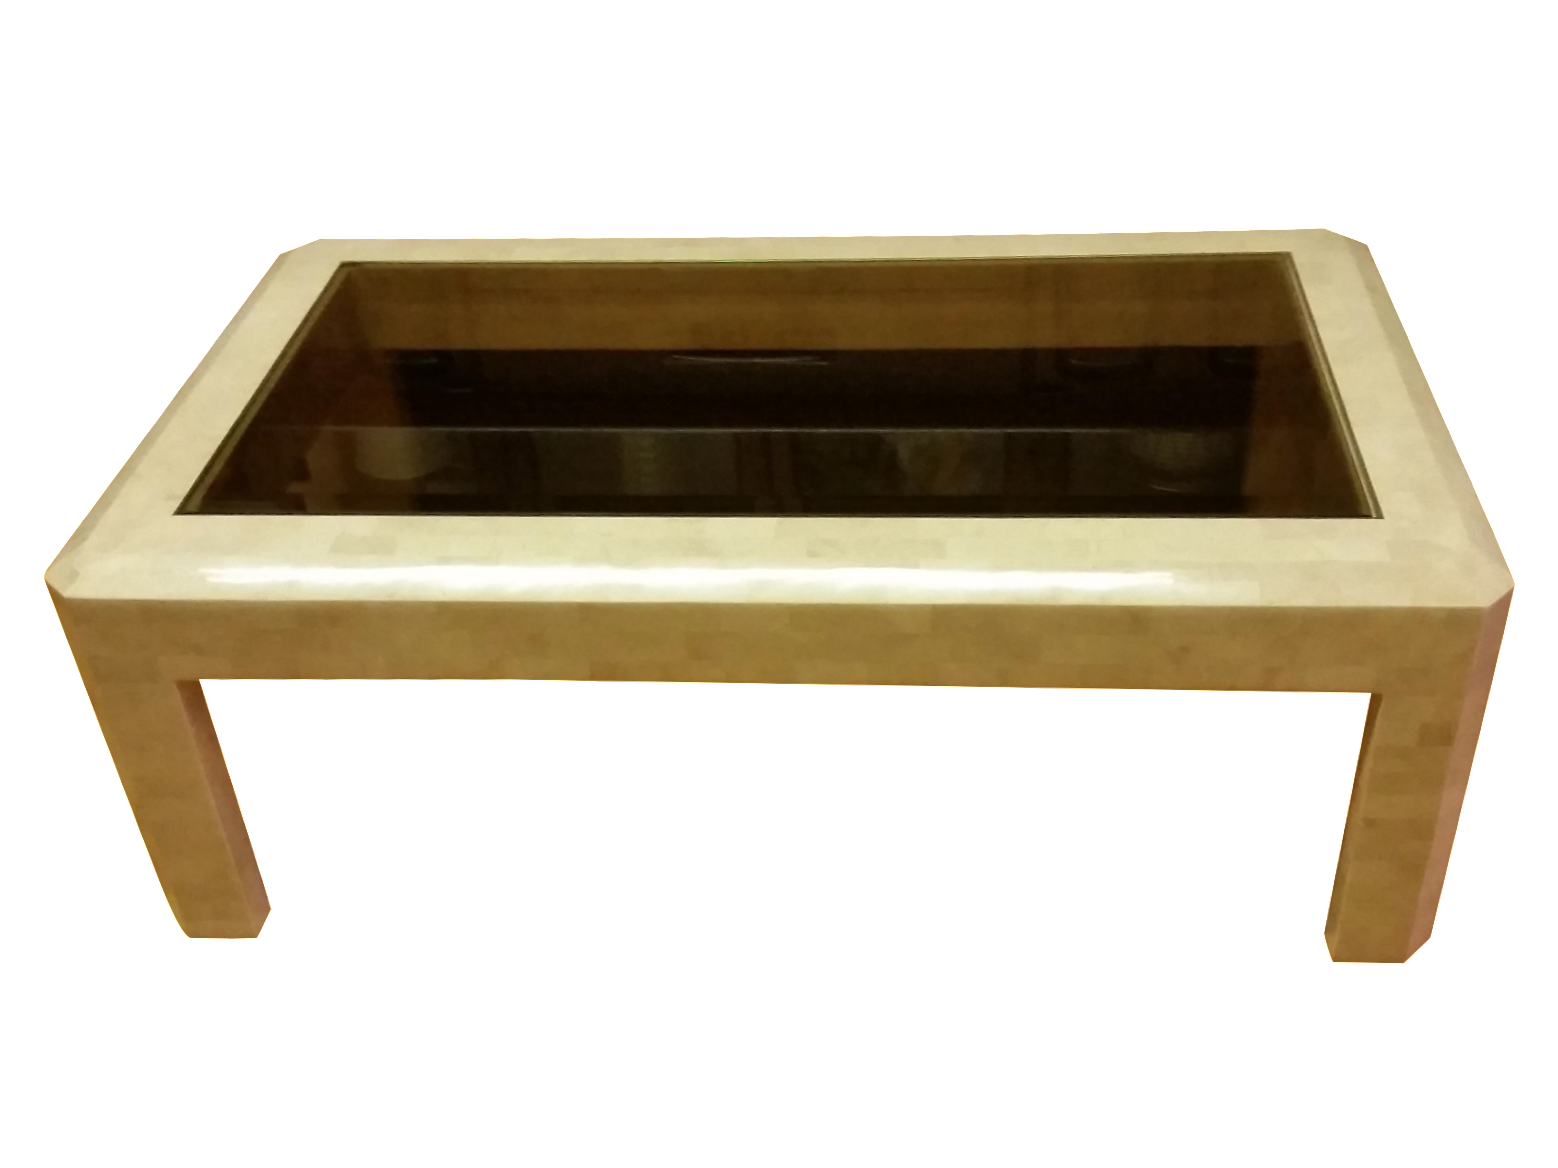 stone coffee table. Maitland-Smith Tessellated Stone Coffee Table - Image 1 Of 10